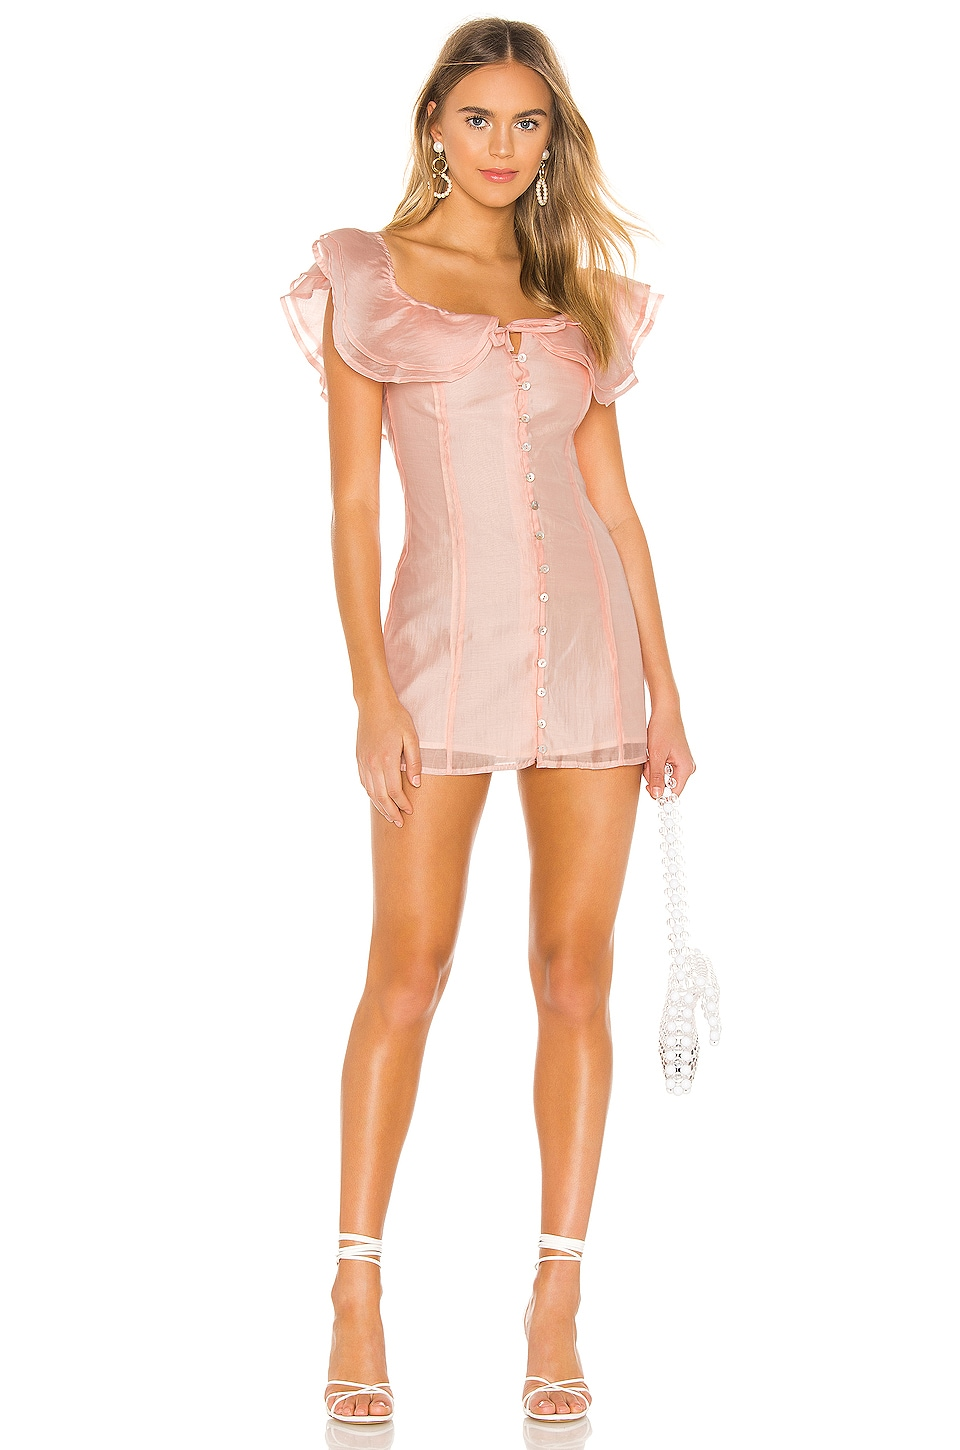 Privacy Please Sofie Mini Dress in Soft Pink